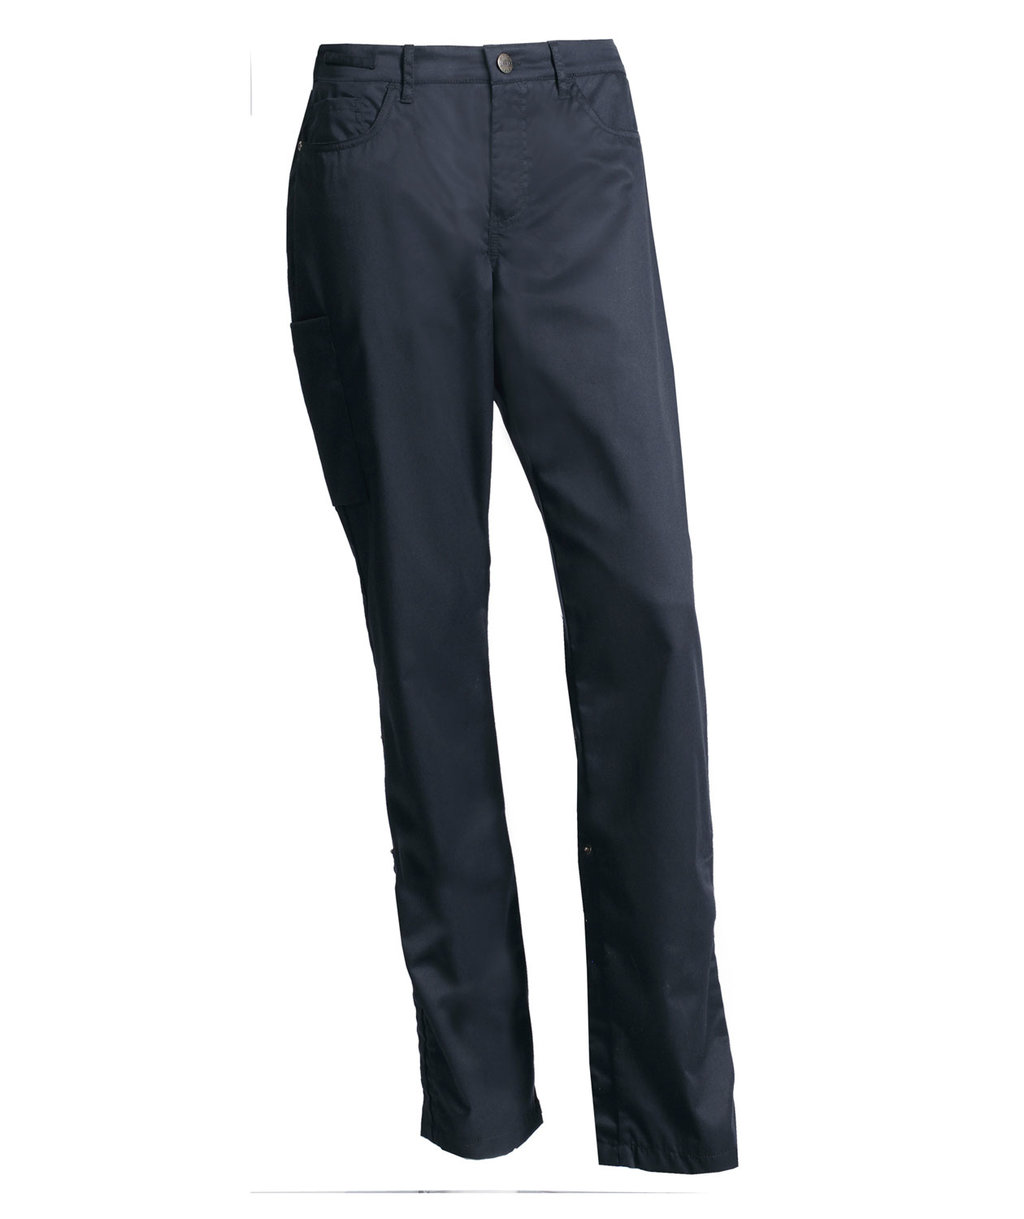 Nybo Super Cool dame jeans, Navy